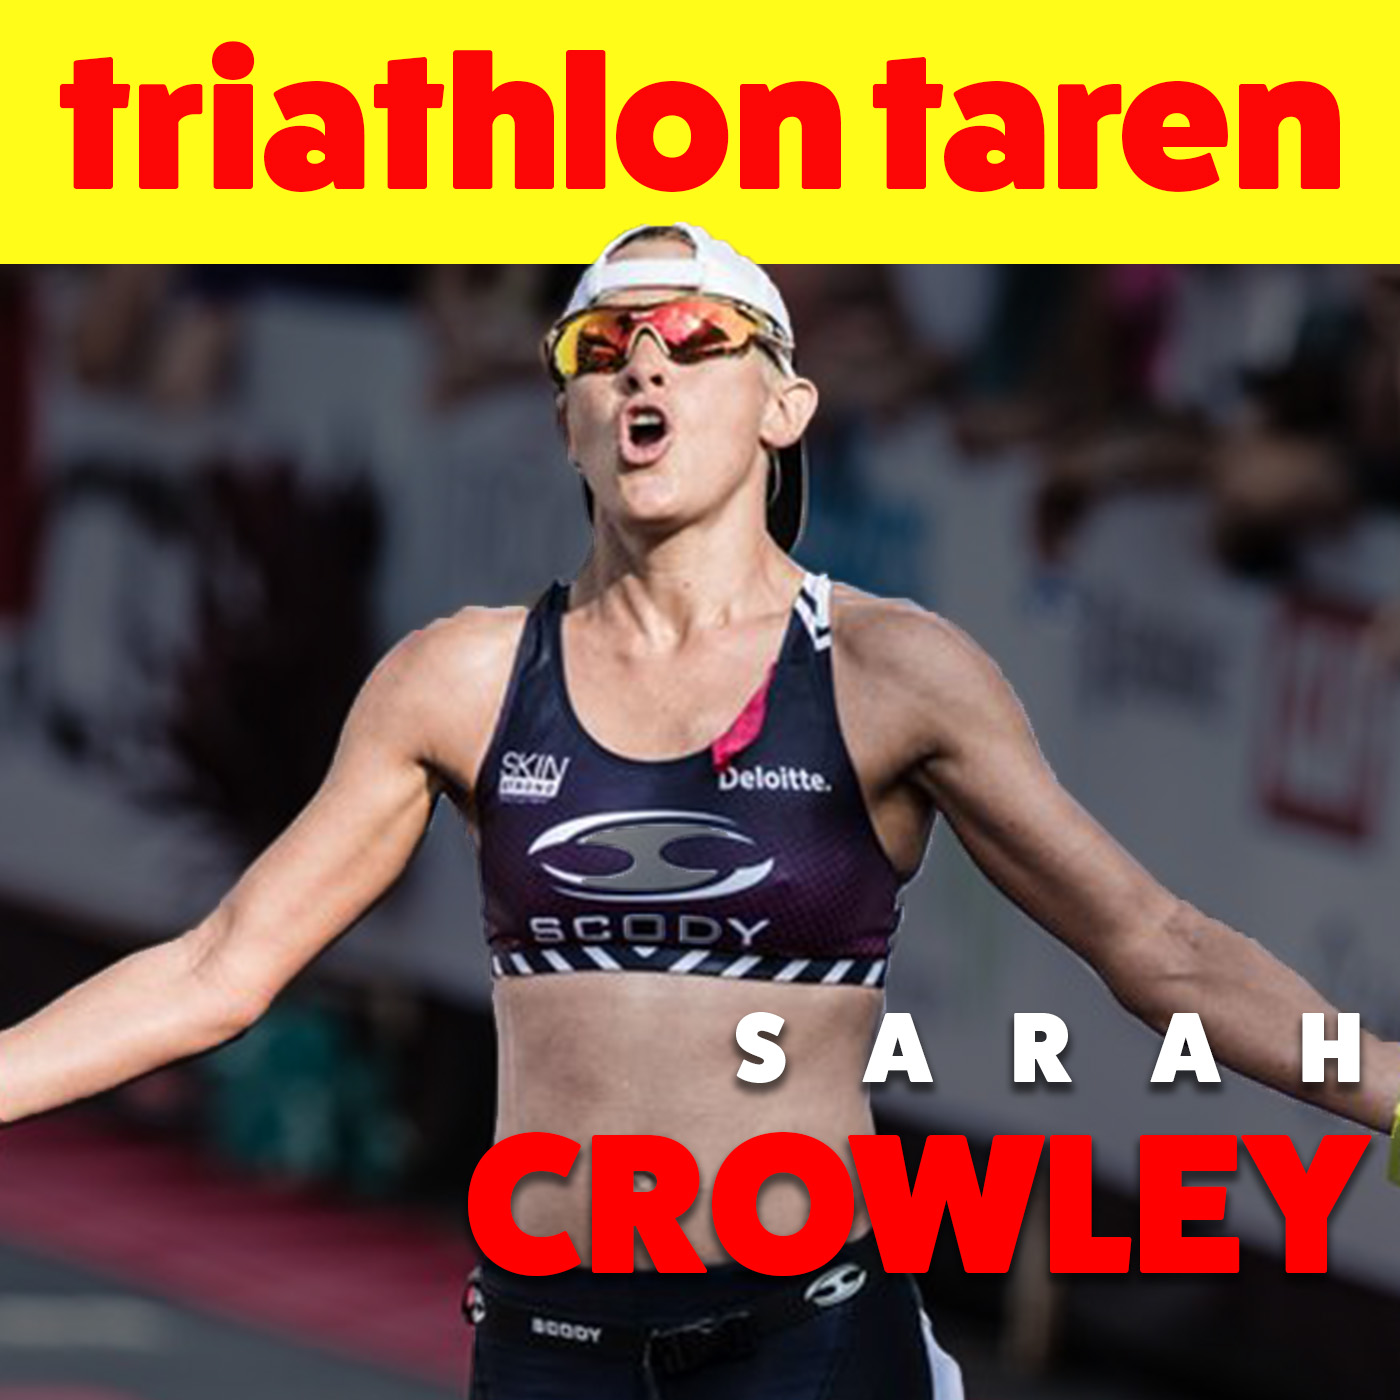 Sarah Crowley: From Accounting to the Ironman World Championship Podium